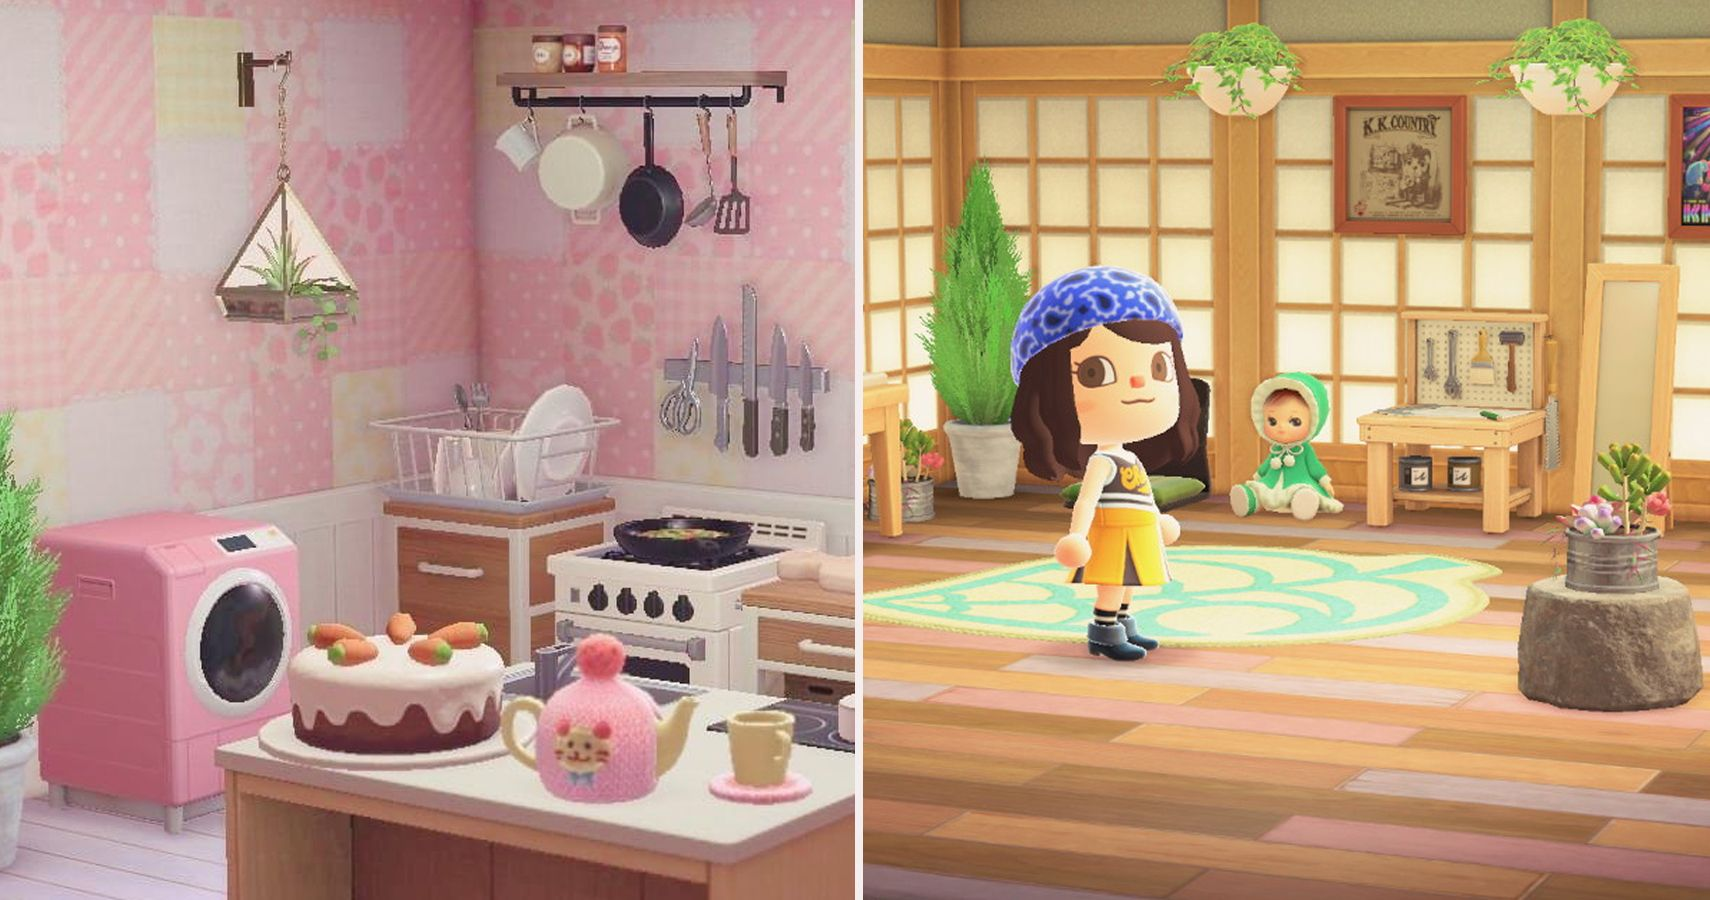 Hypebeast Bedroom Wallpaper | www.resnooze.com on Animal Crossing Room Ideas New Horizons  id=93315